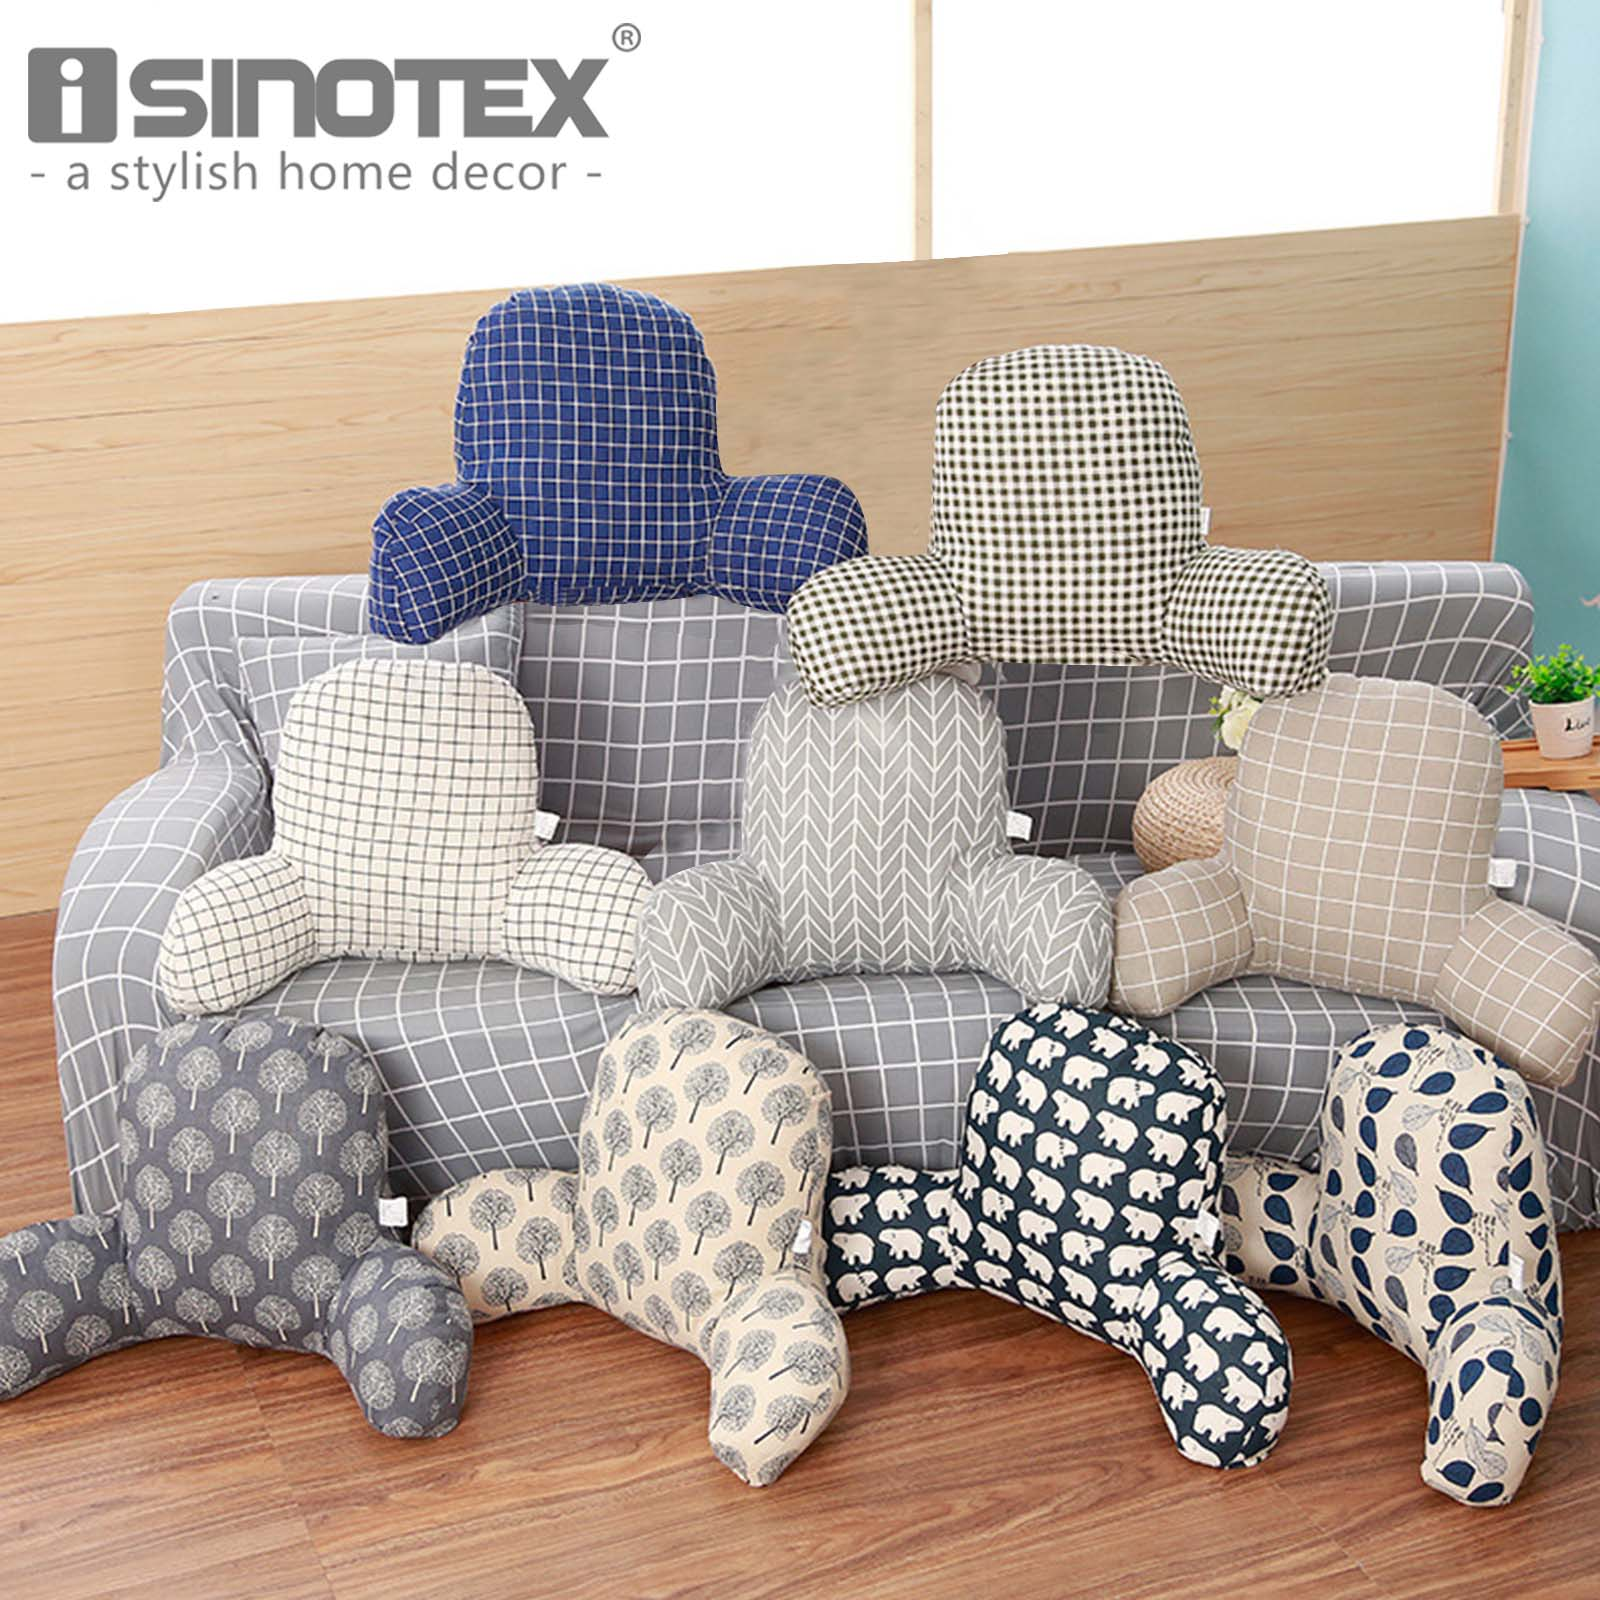 1-Piece Cotton Linen Back Cushion With Arm Support For Sofa Car Bed Rest Printed Cushion Include Pillow Core Washable